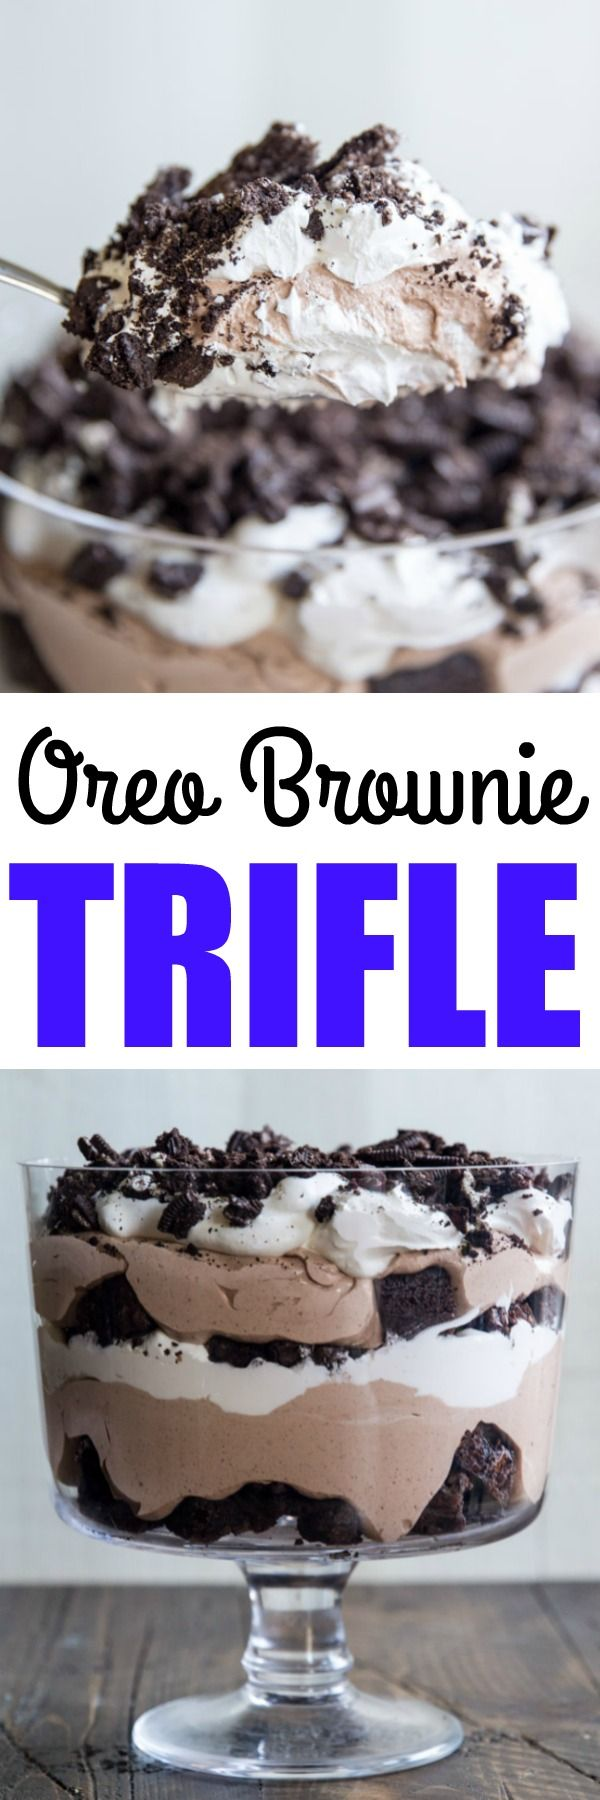 Oreo Brownie Trifle Recipe | Culinary Hill